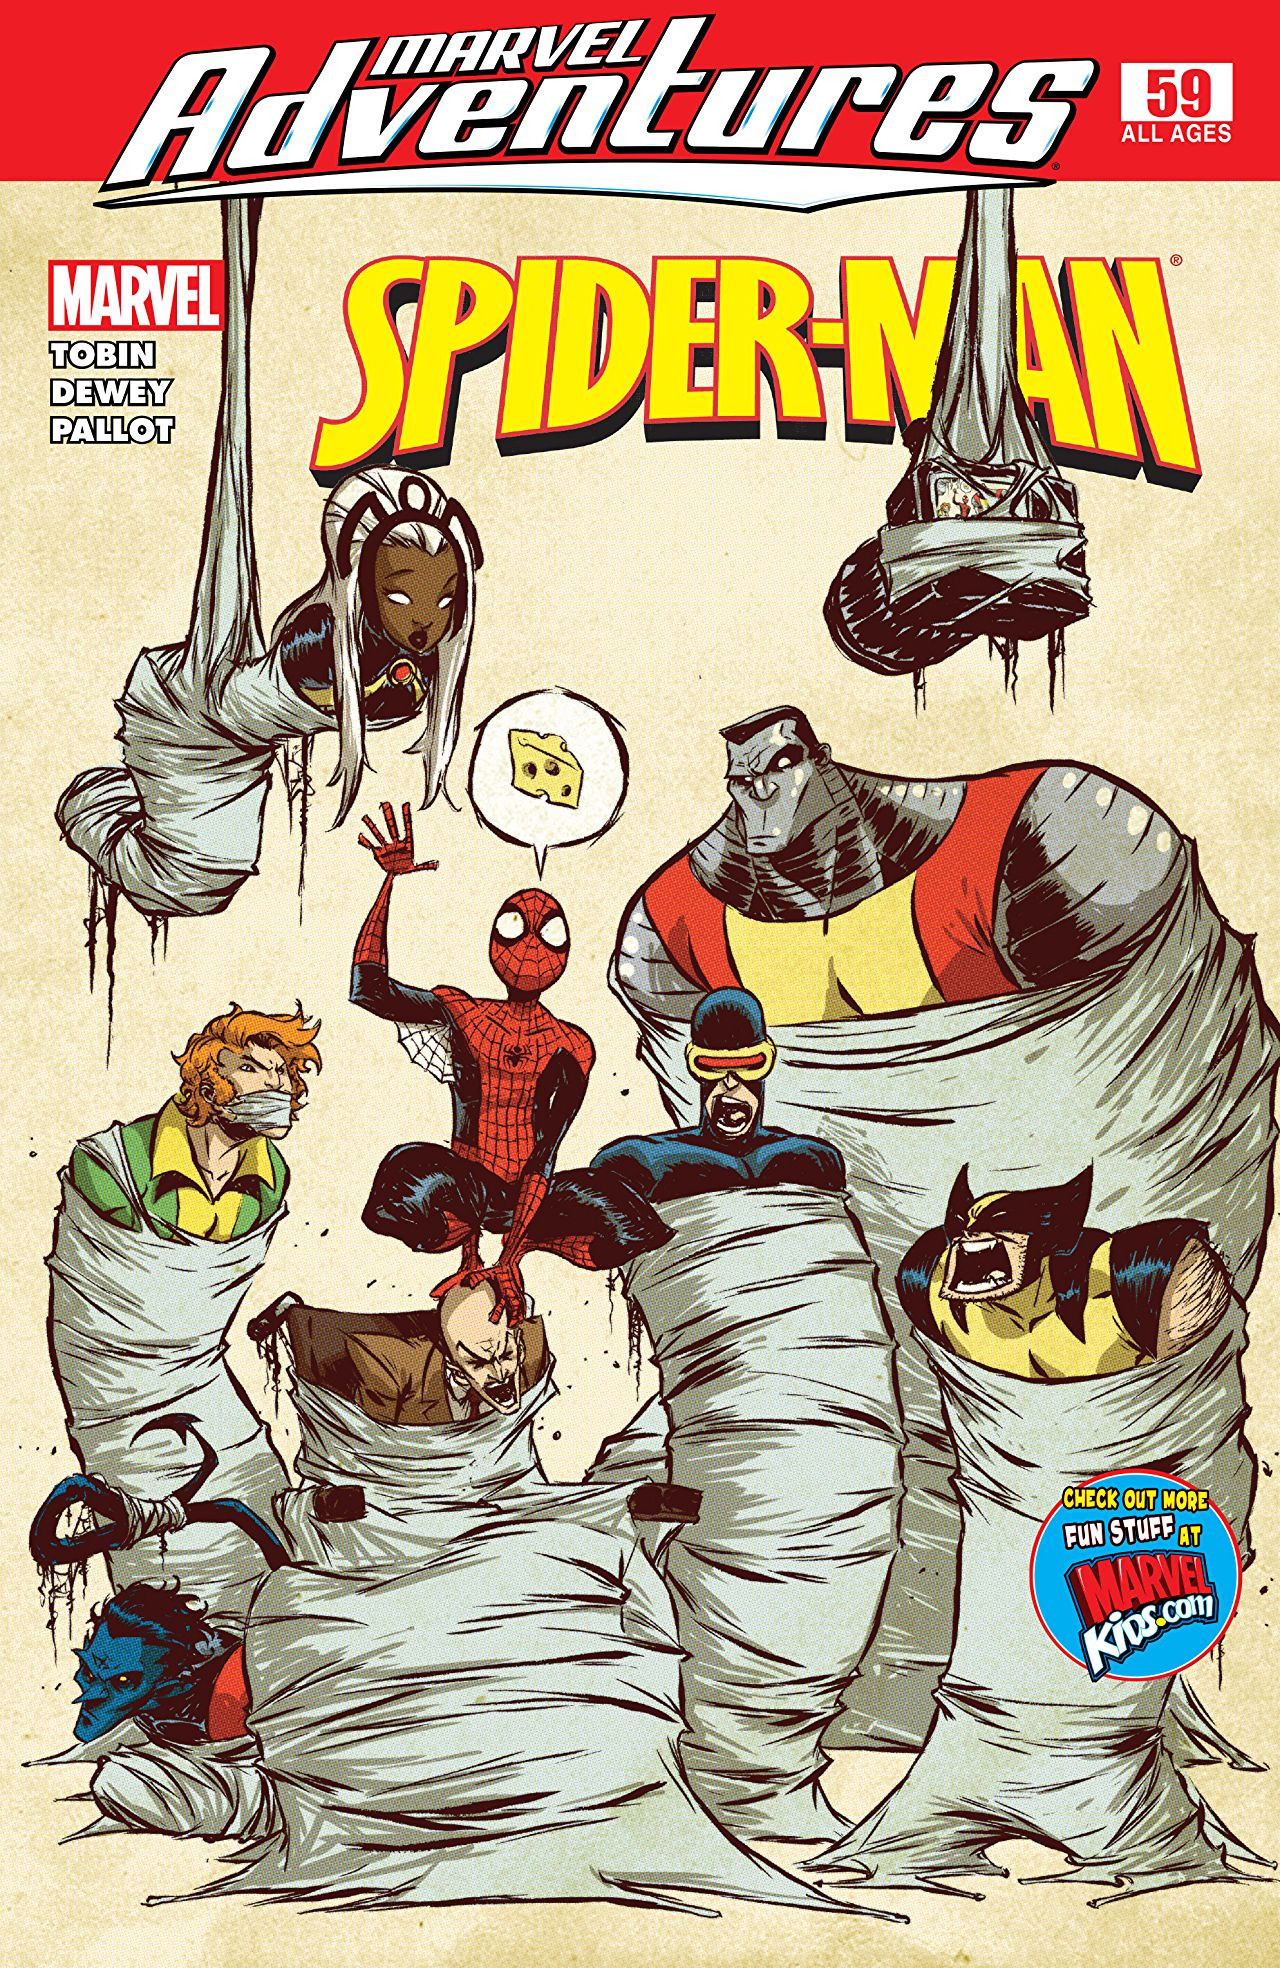 Marvel Adventures: Spider-Man Vol 1 59